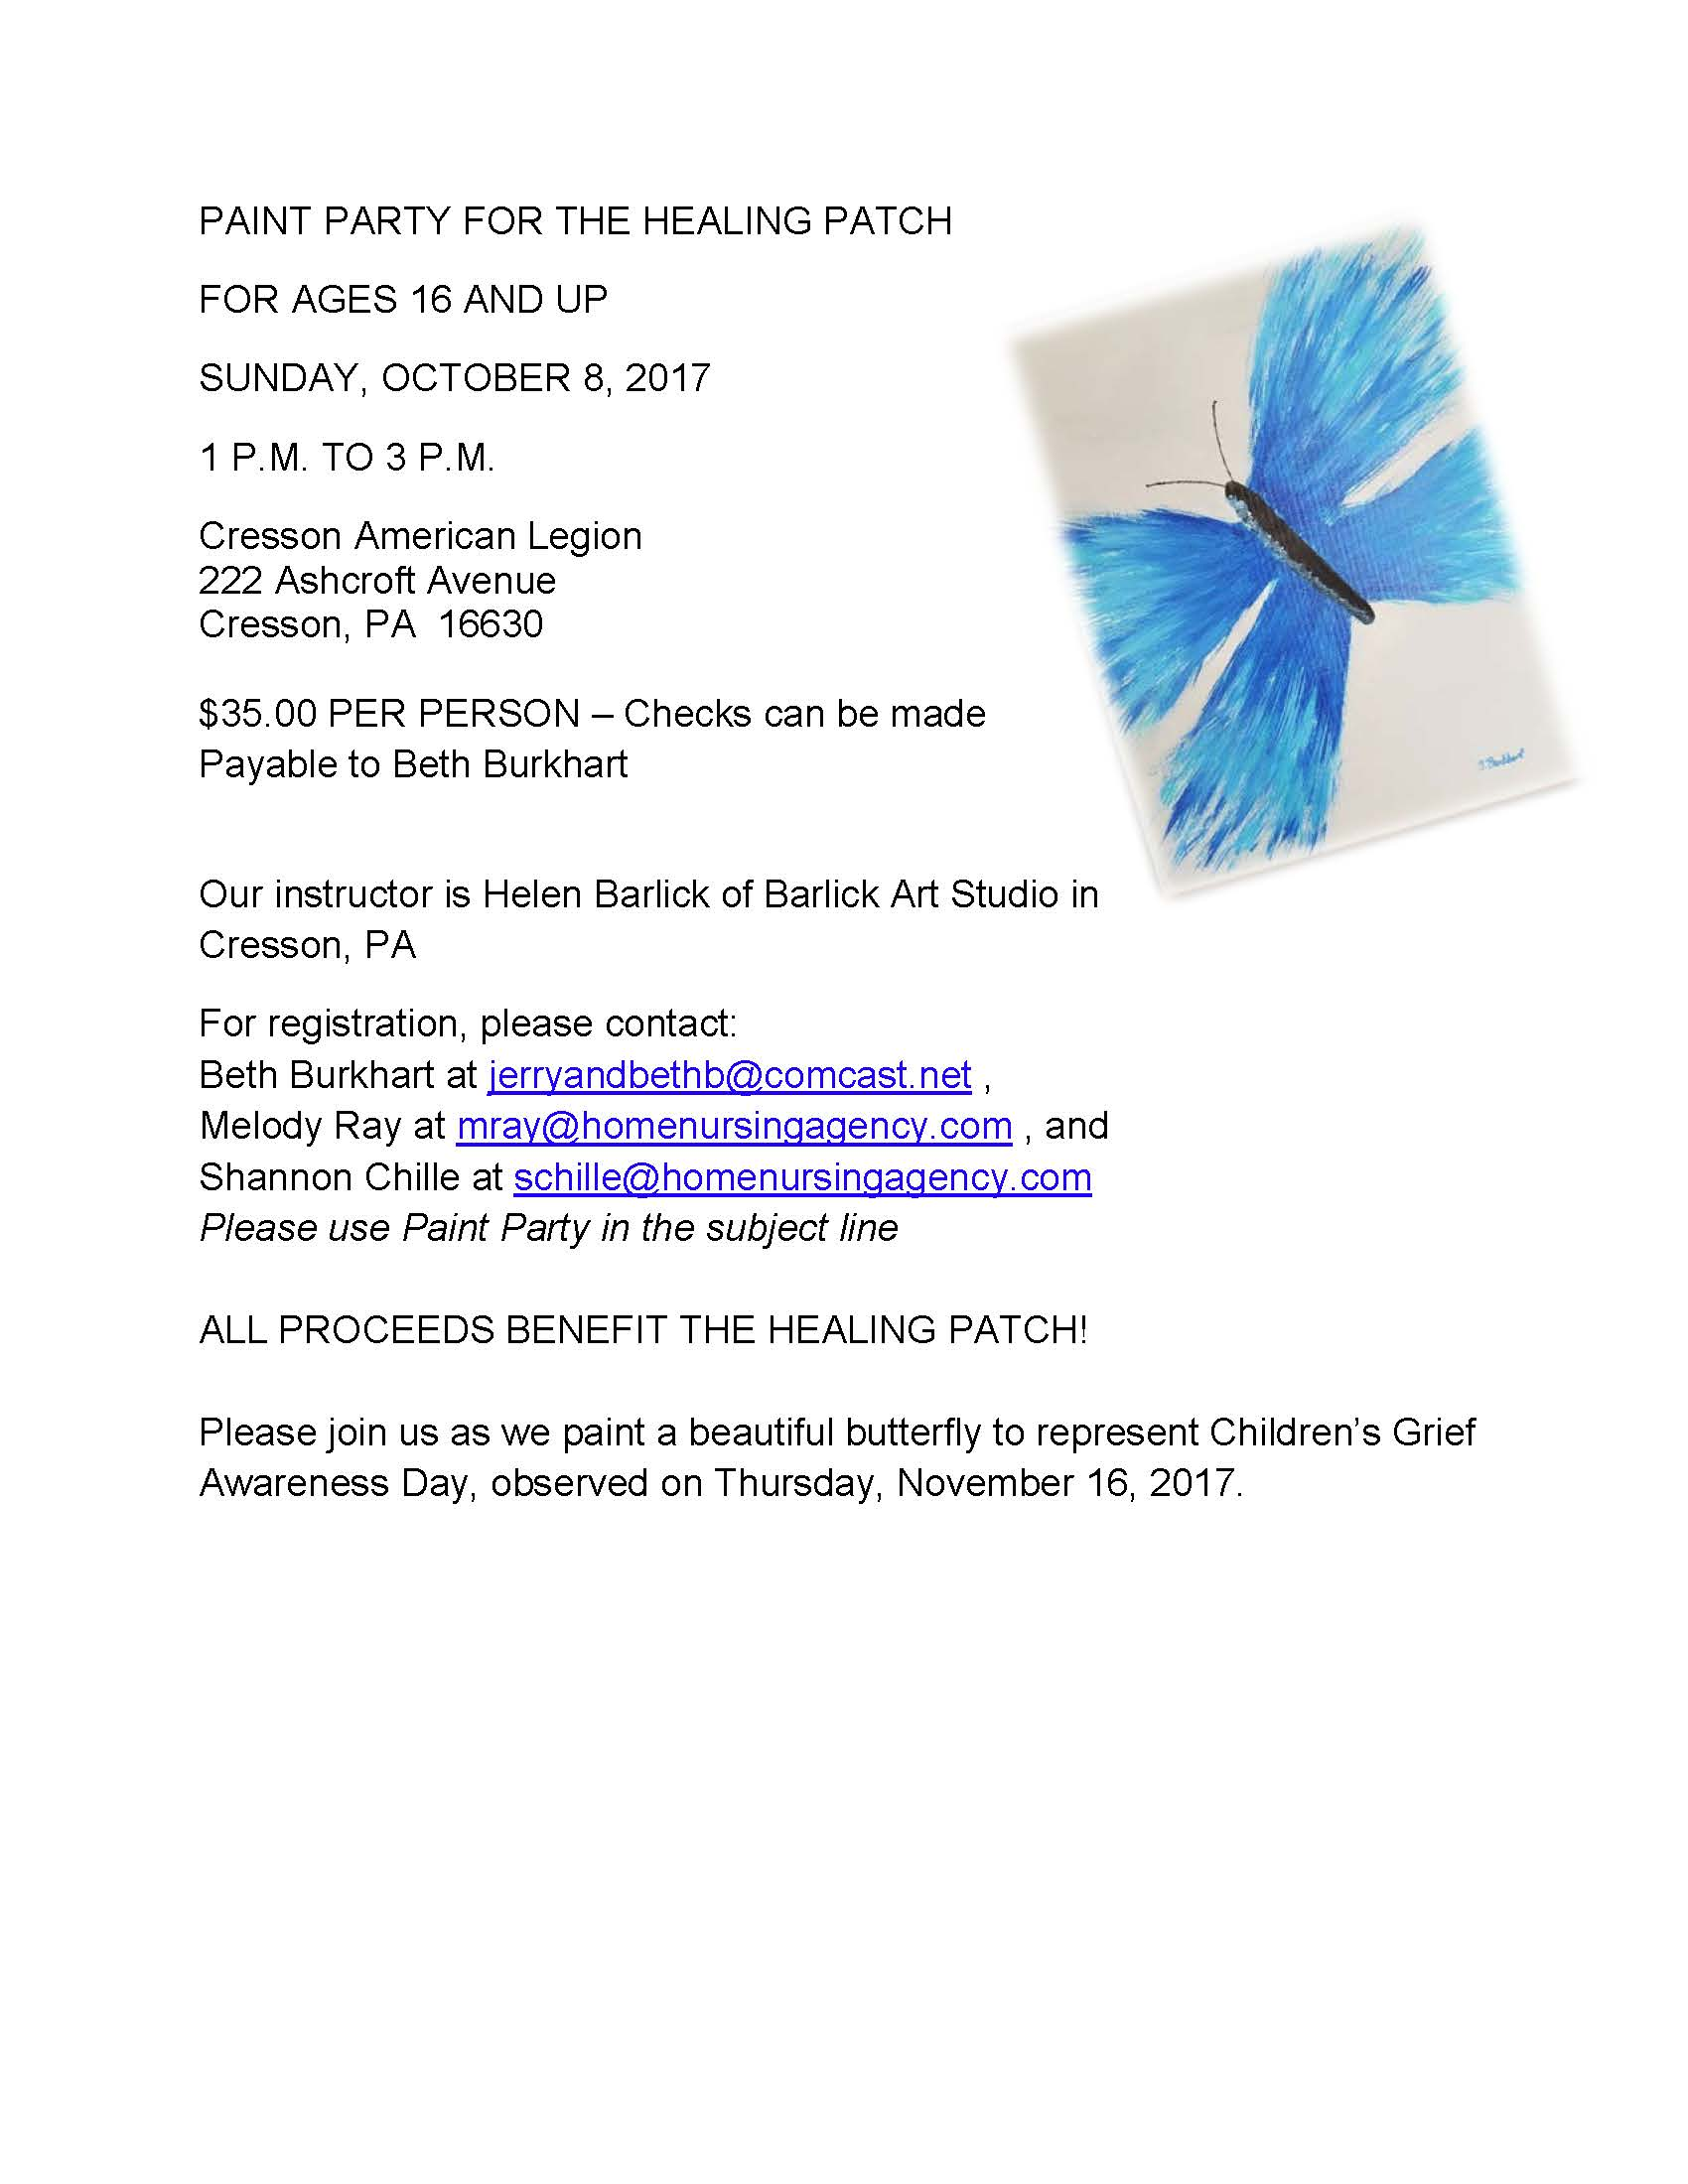 Healing Patch Paint Party Flyer 8-17.jpg